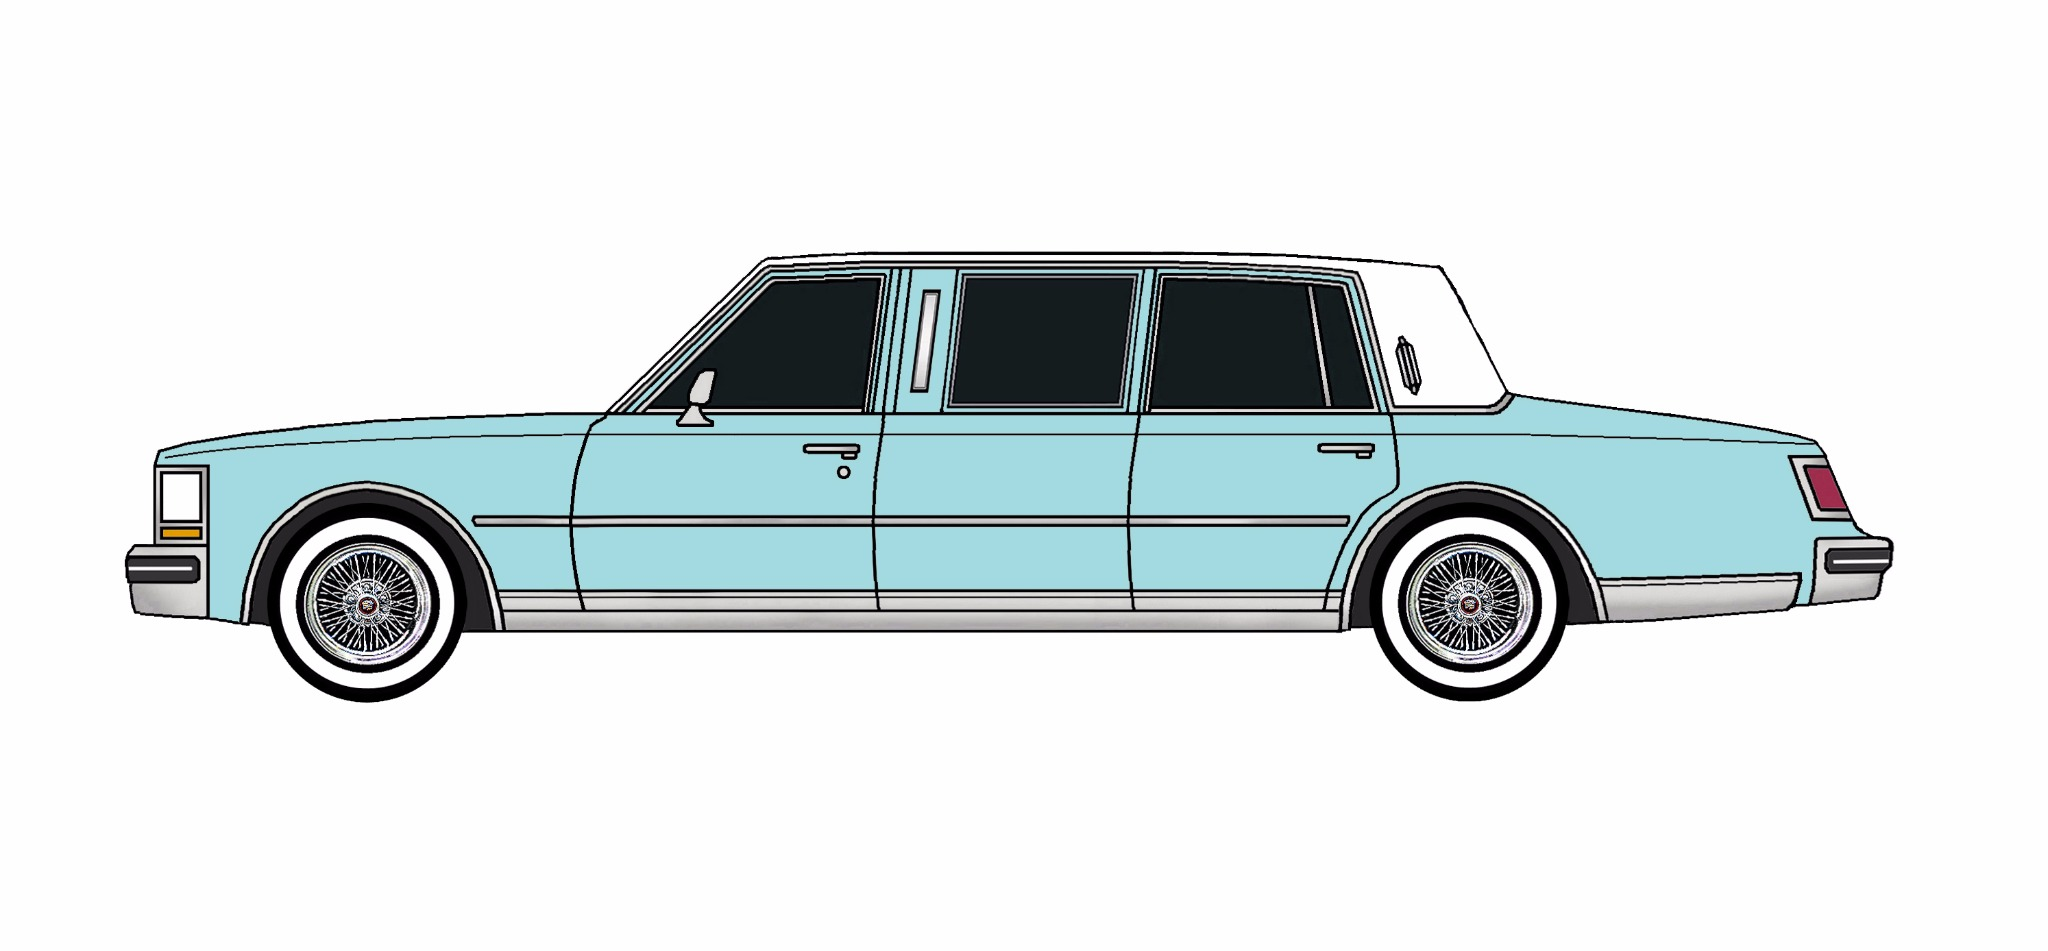 1978 Cadillac Seville Limo SKY BLUE